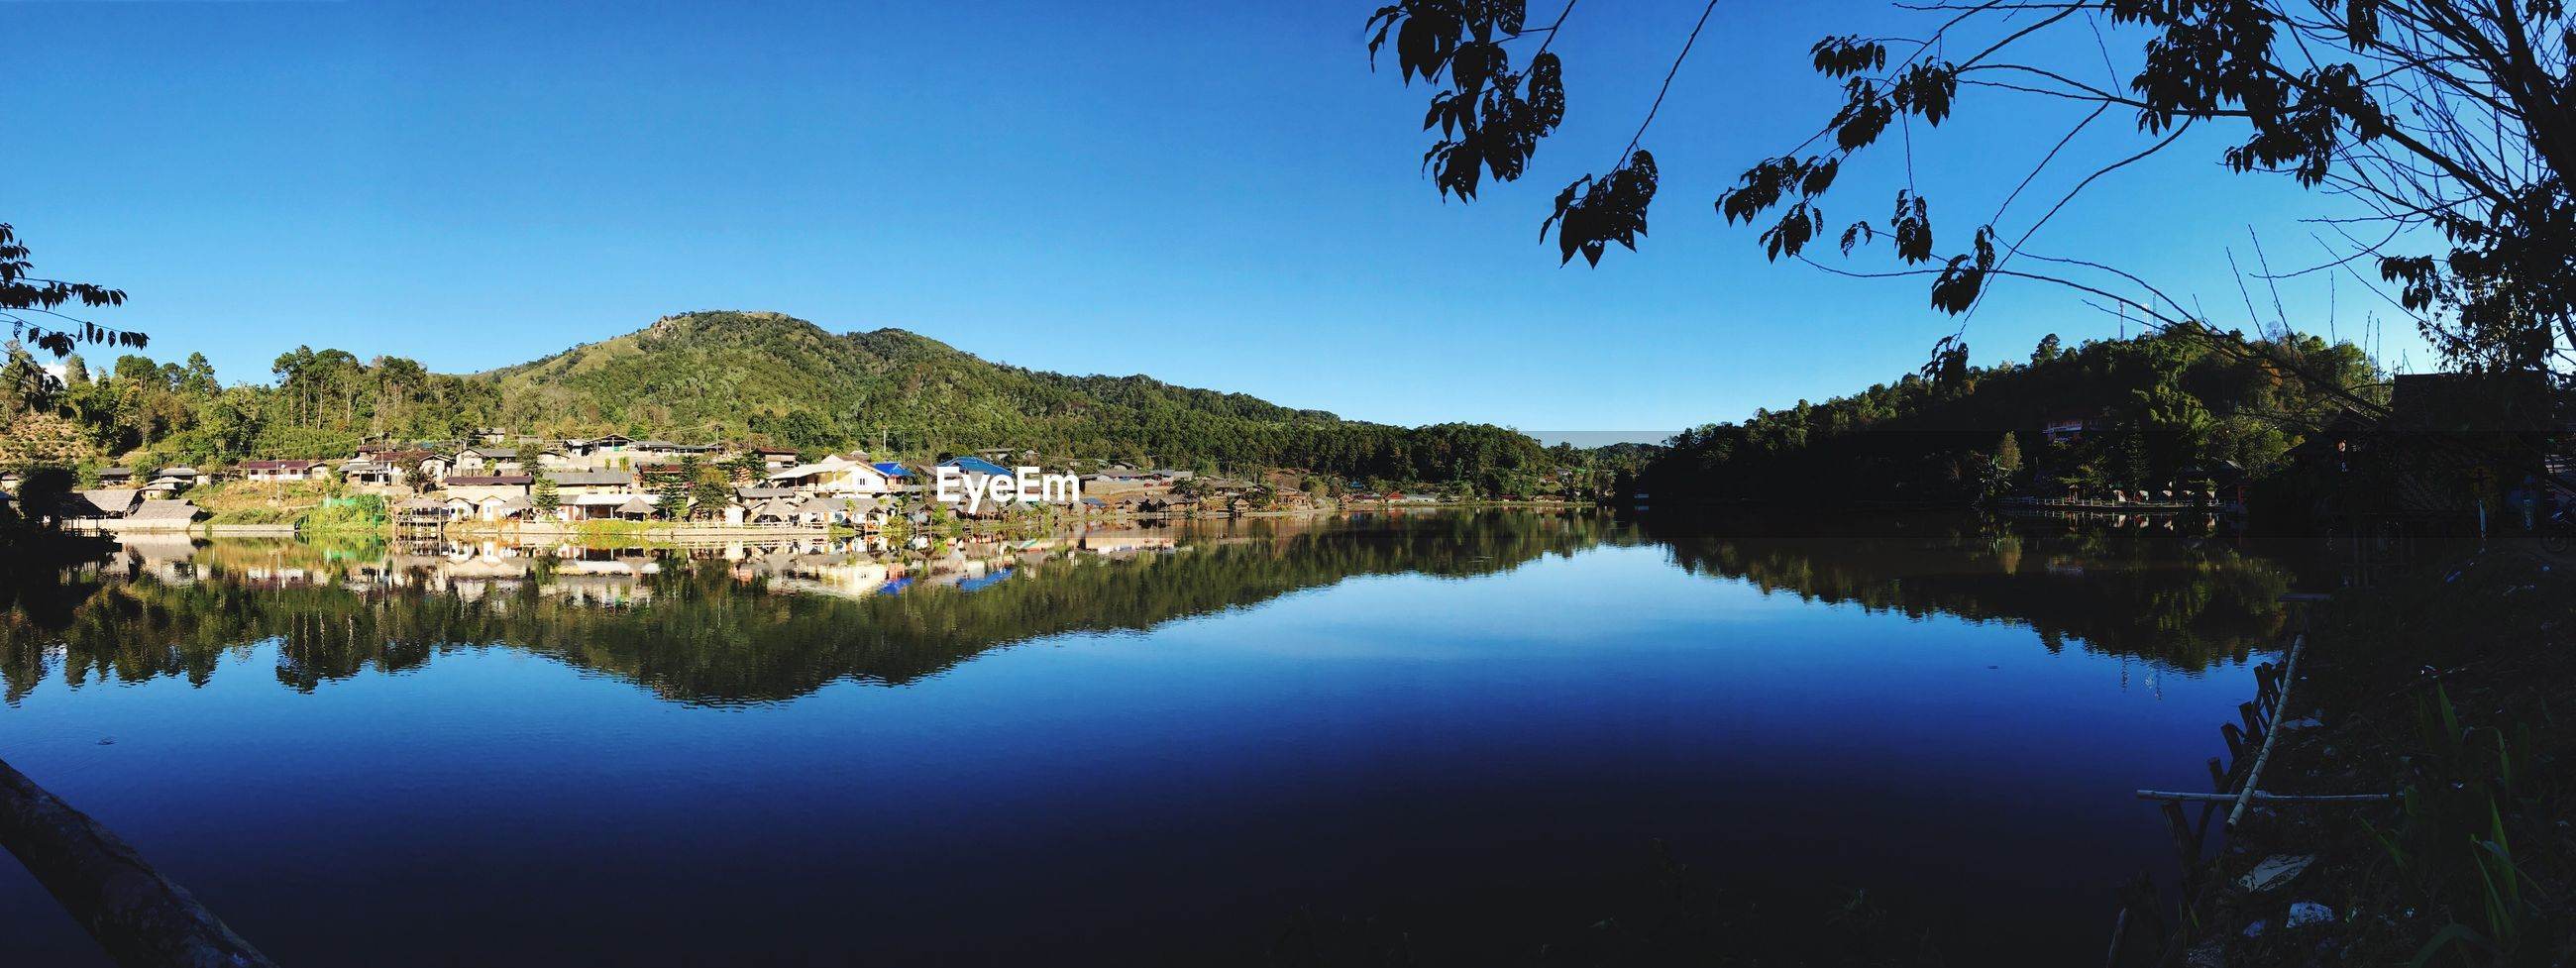 SCENIC VIEW OF LAKE BY TOWN AGAINST CLEAR SKY